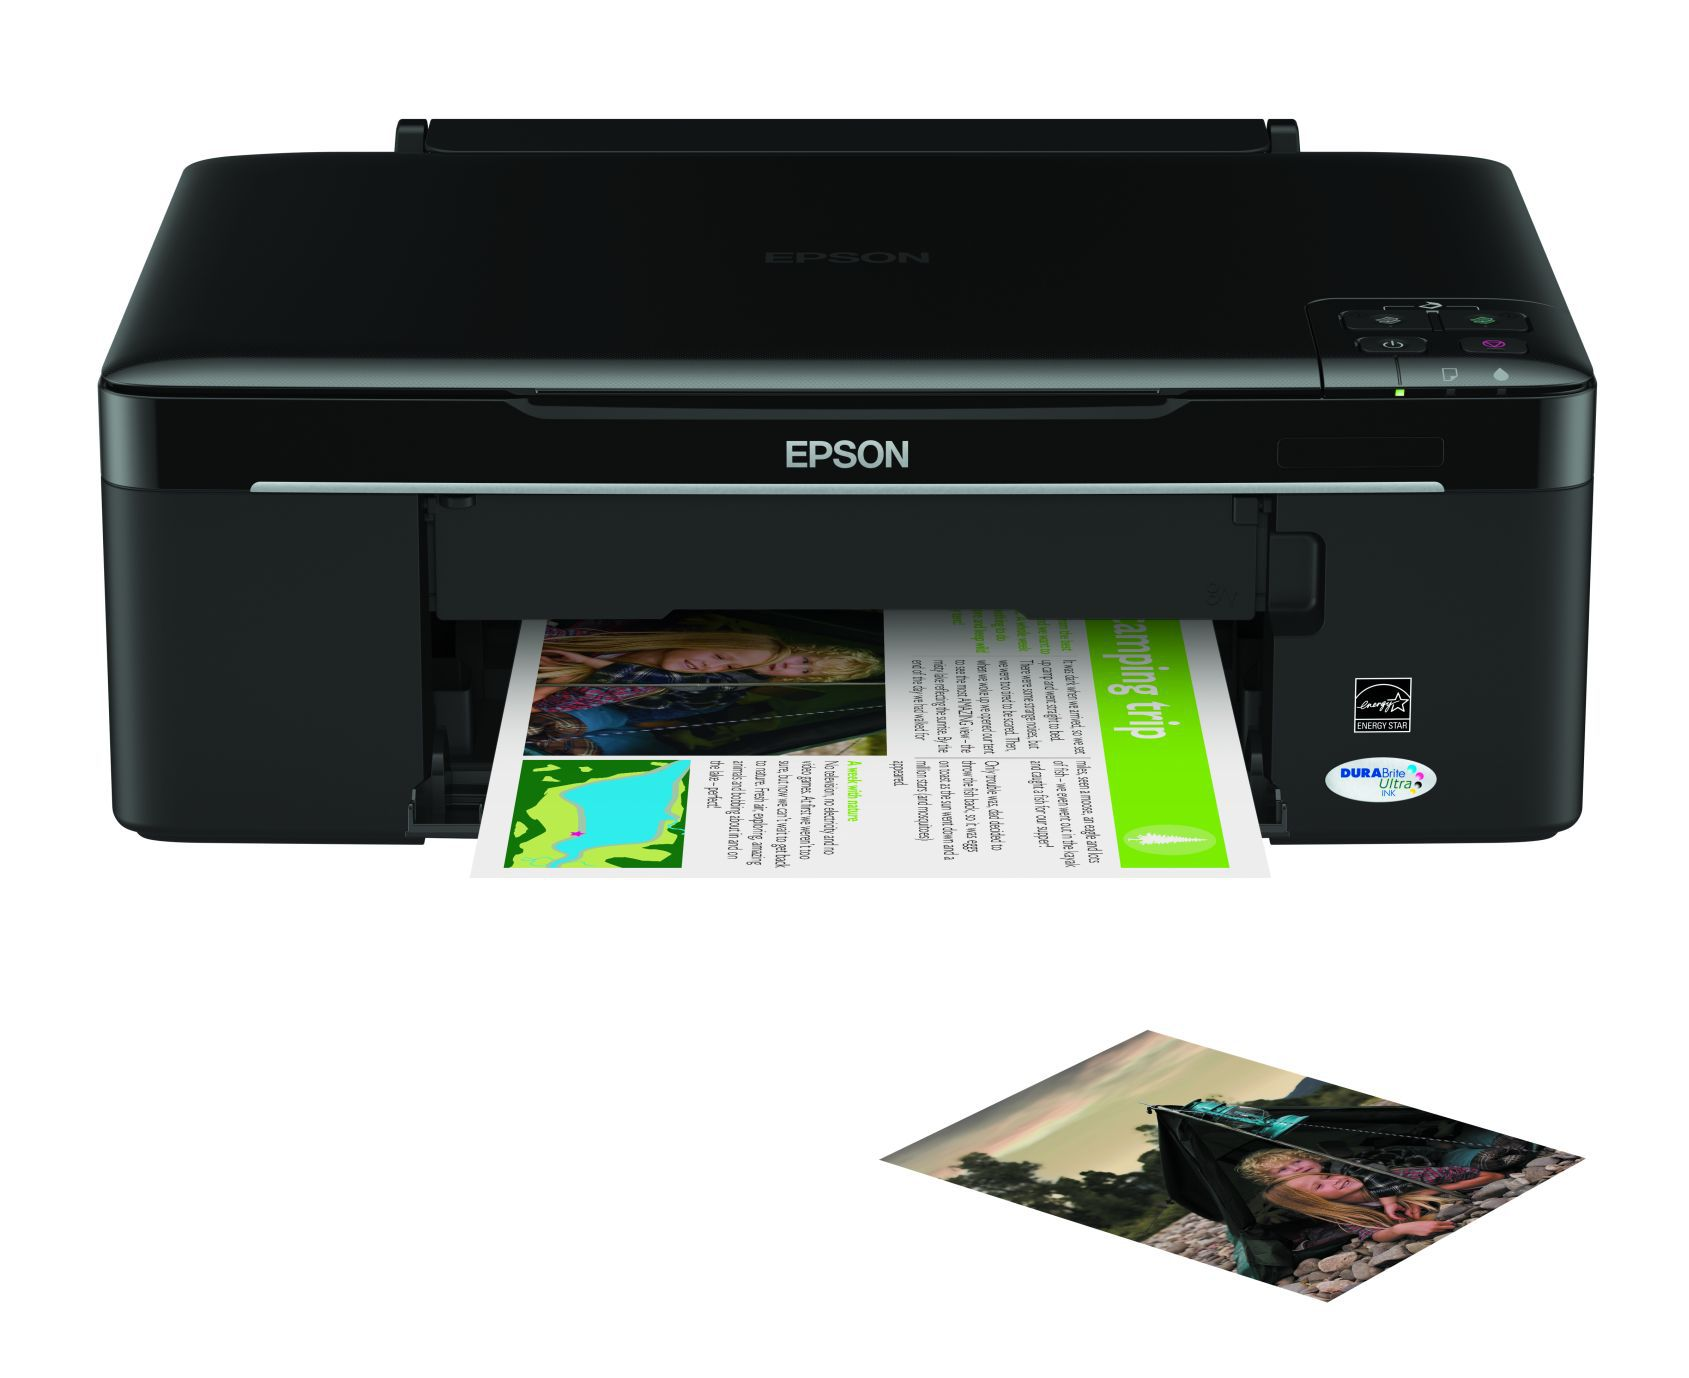 Epson Stylus SX Driver Manual Software & Download